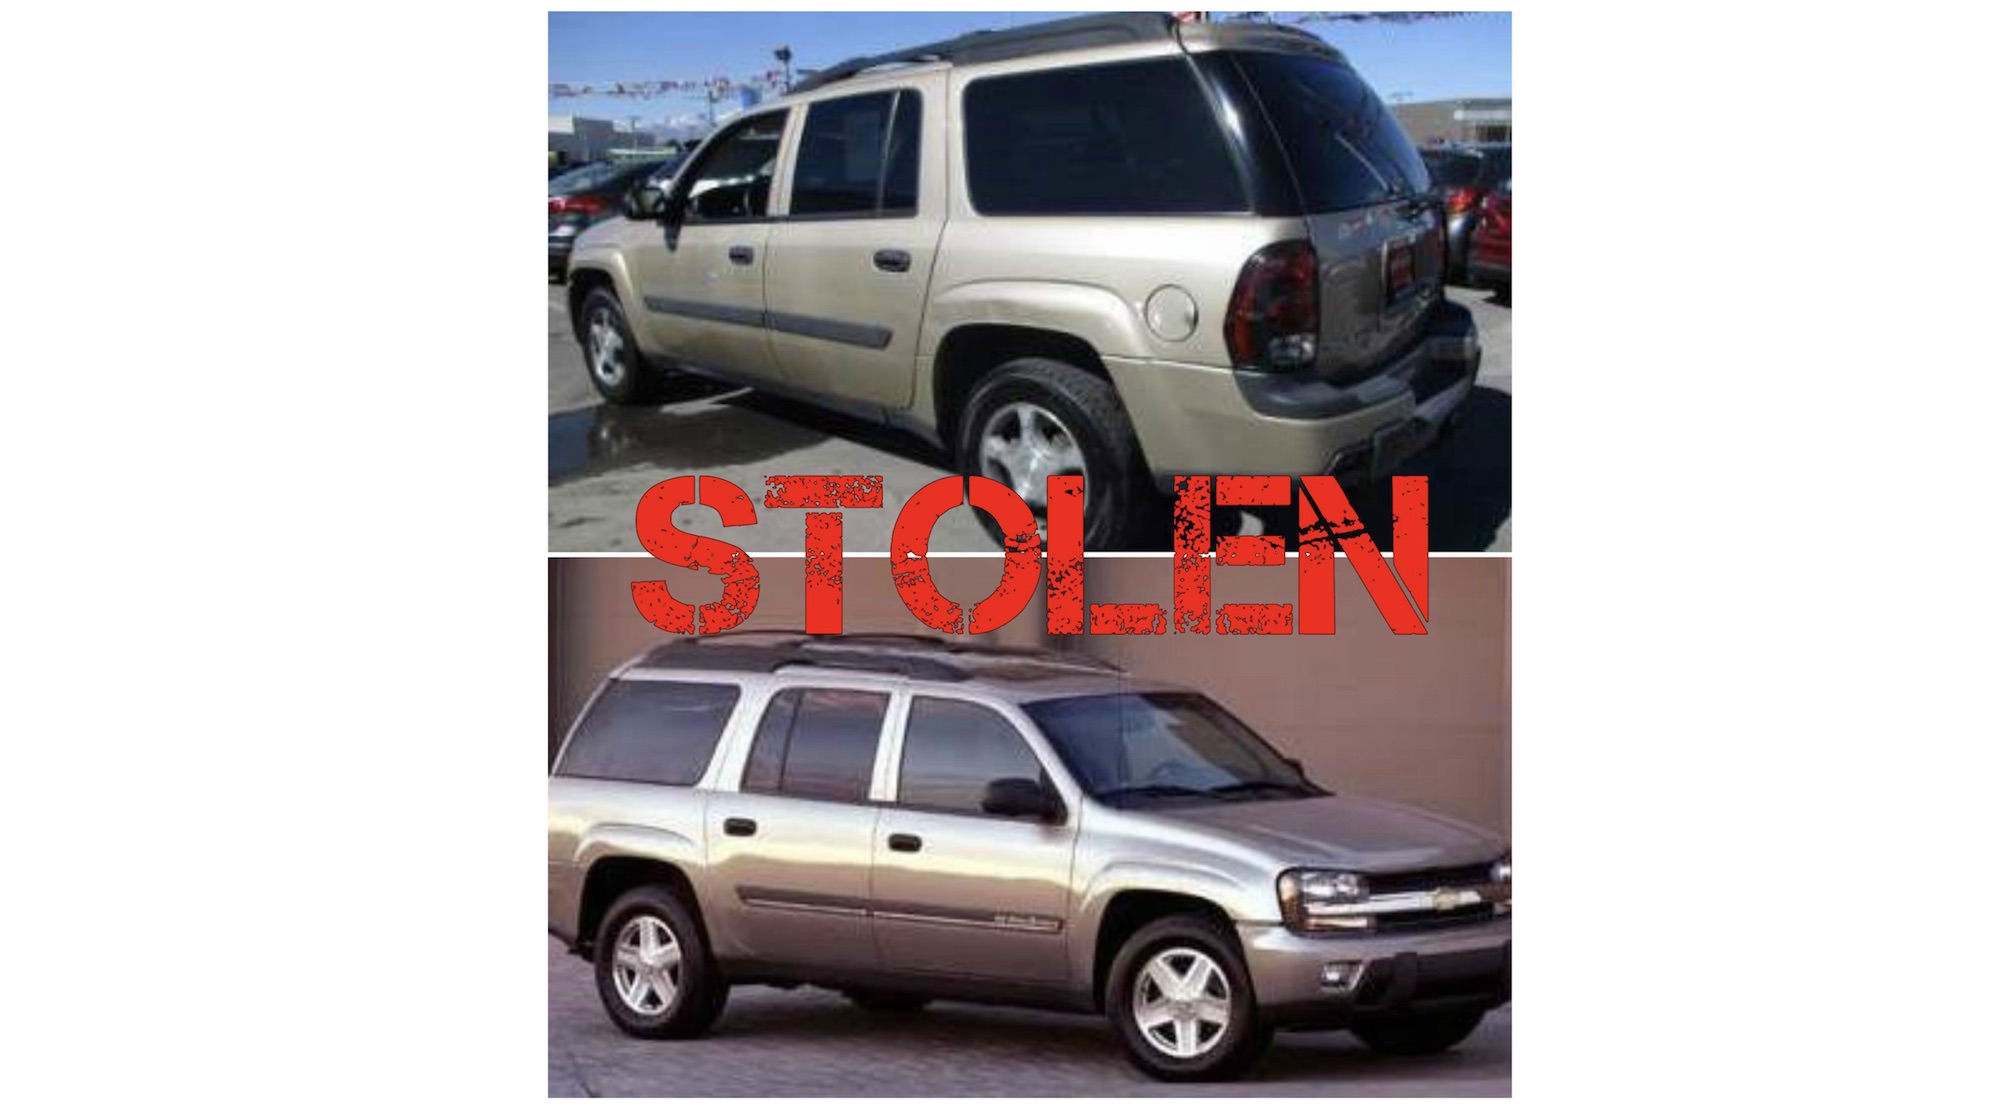 Stolen Gold Chevy Trailblazer from Jones Street in Sioux City